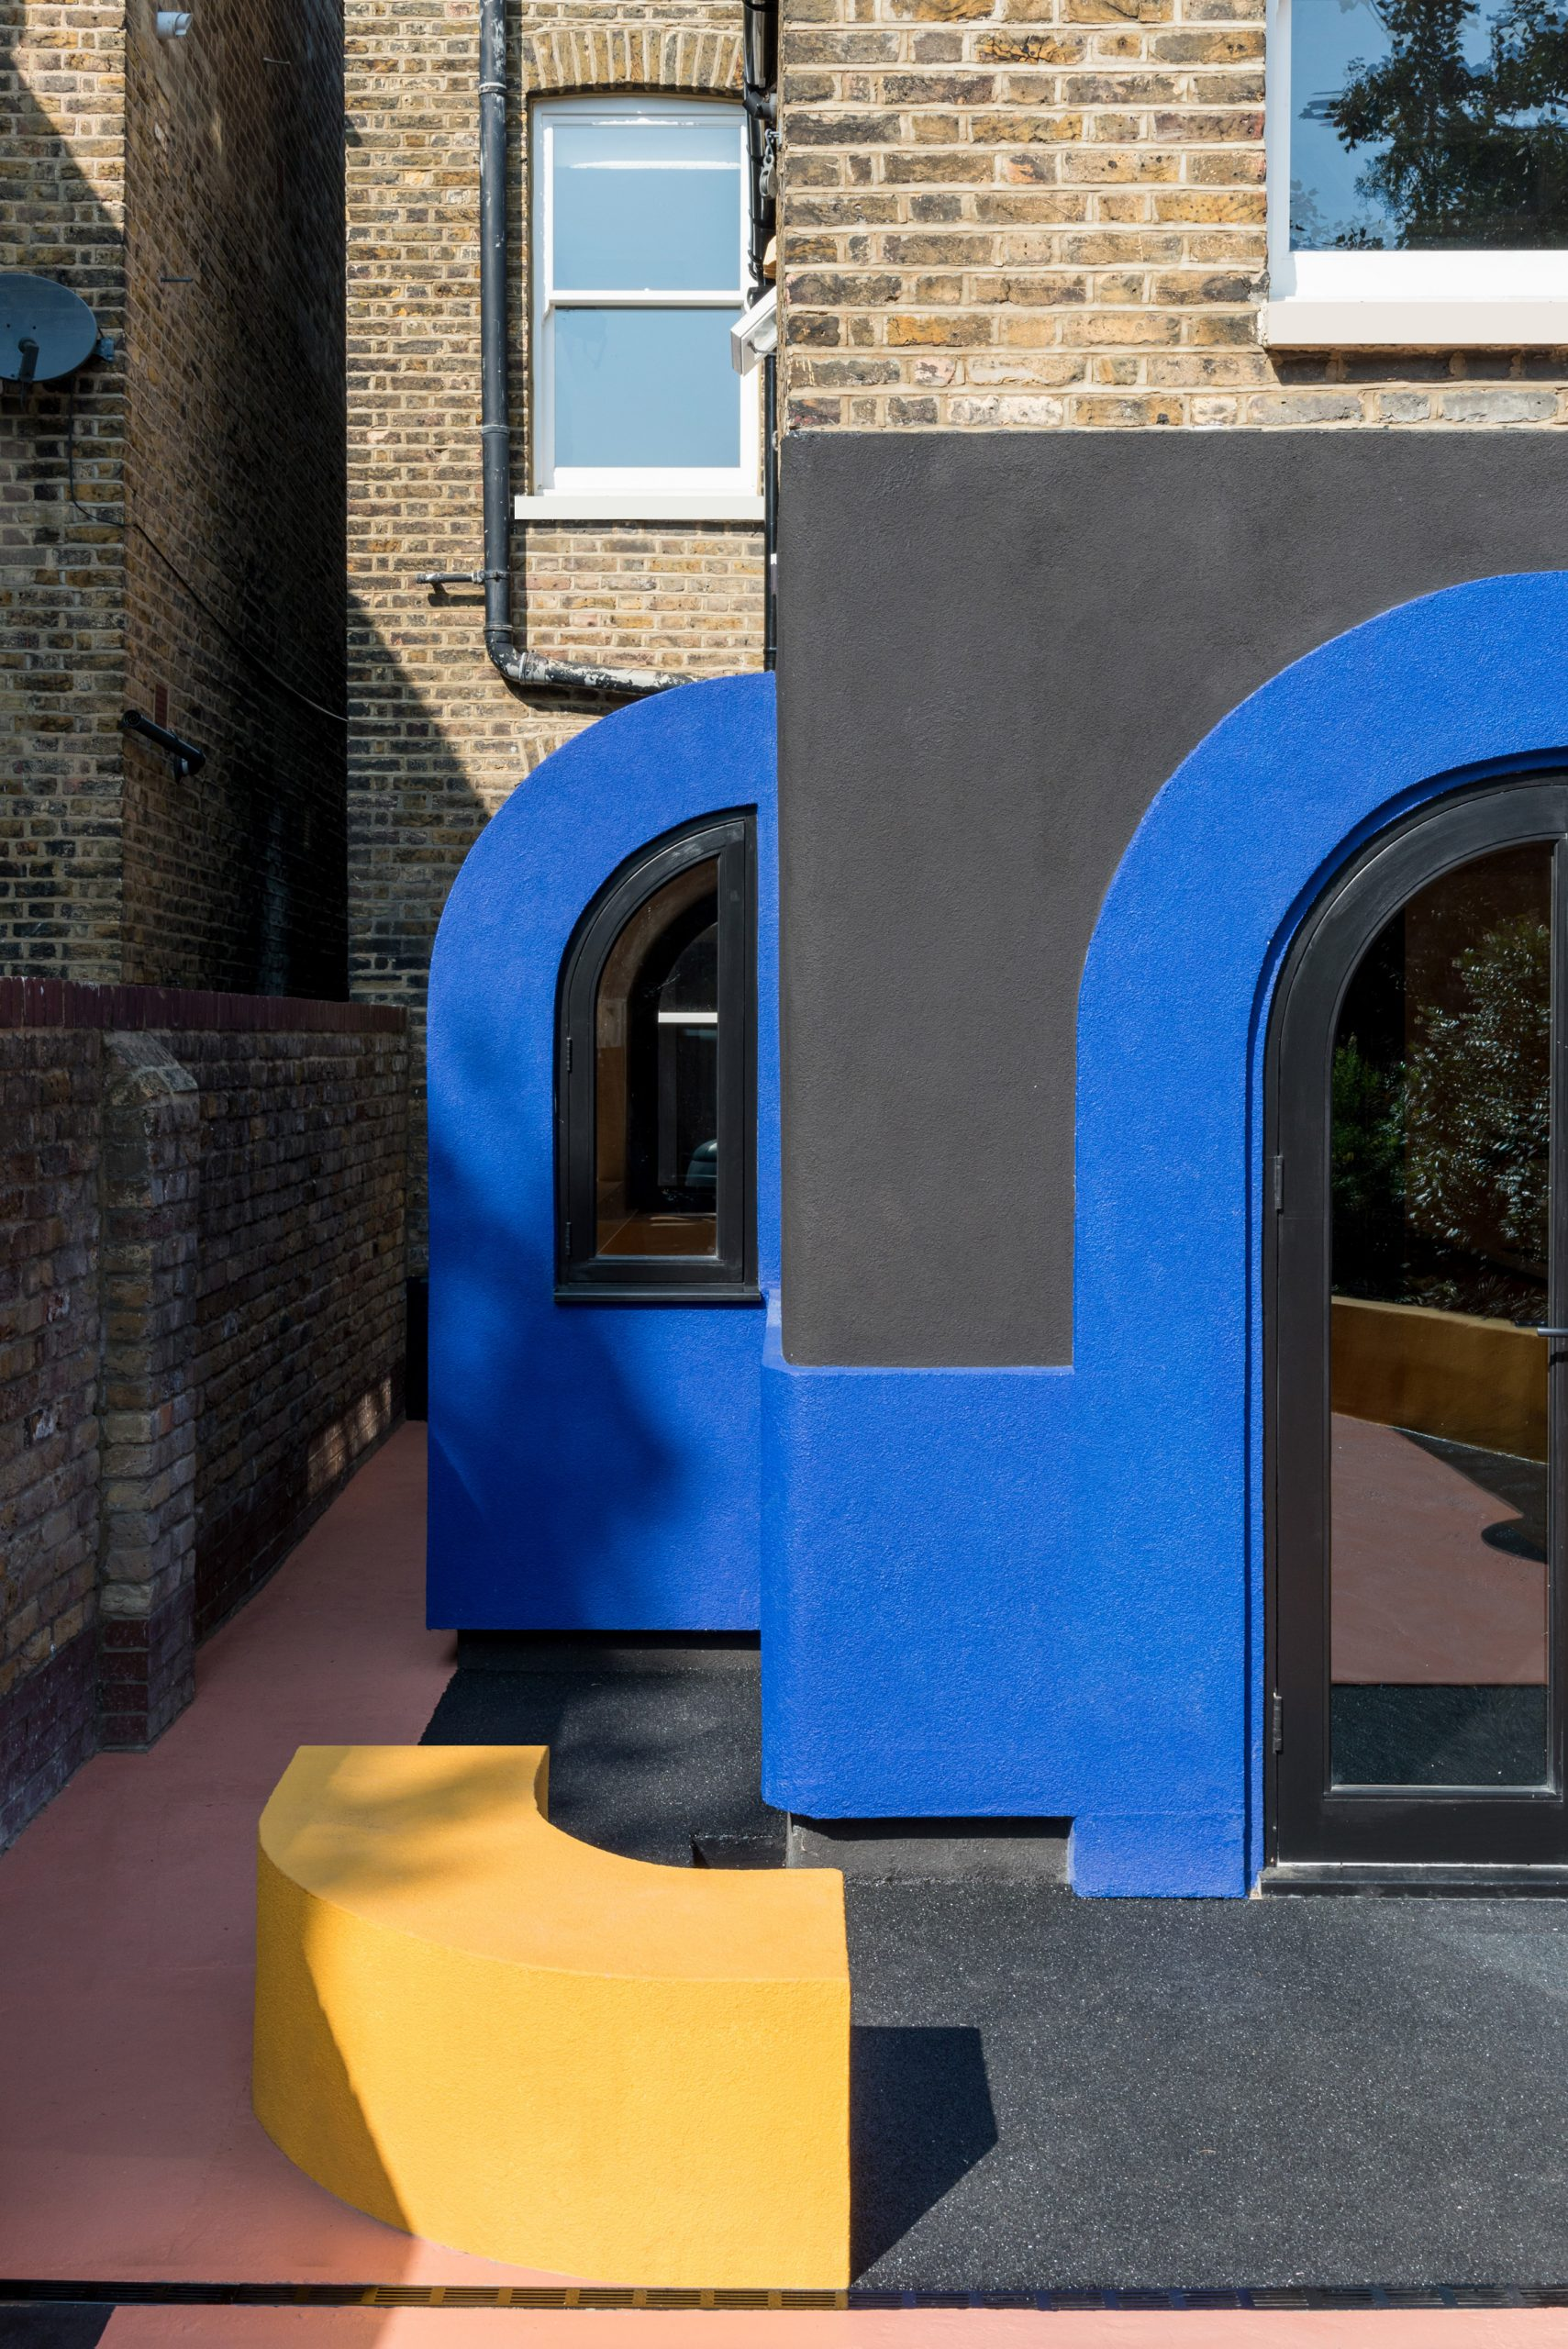 Amott Road house's colourful rear extension